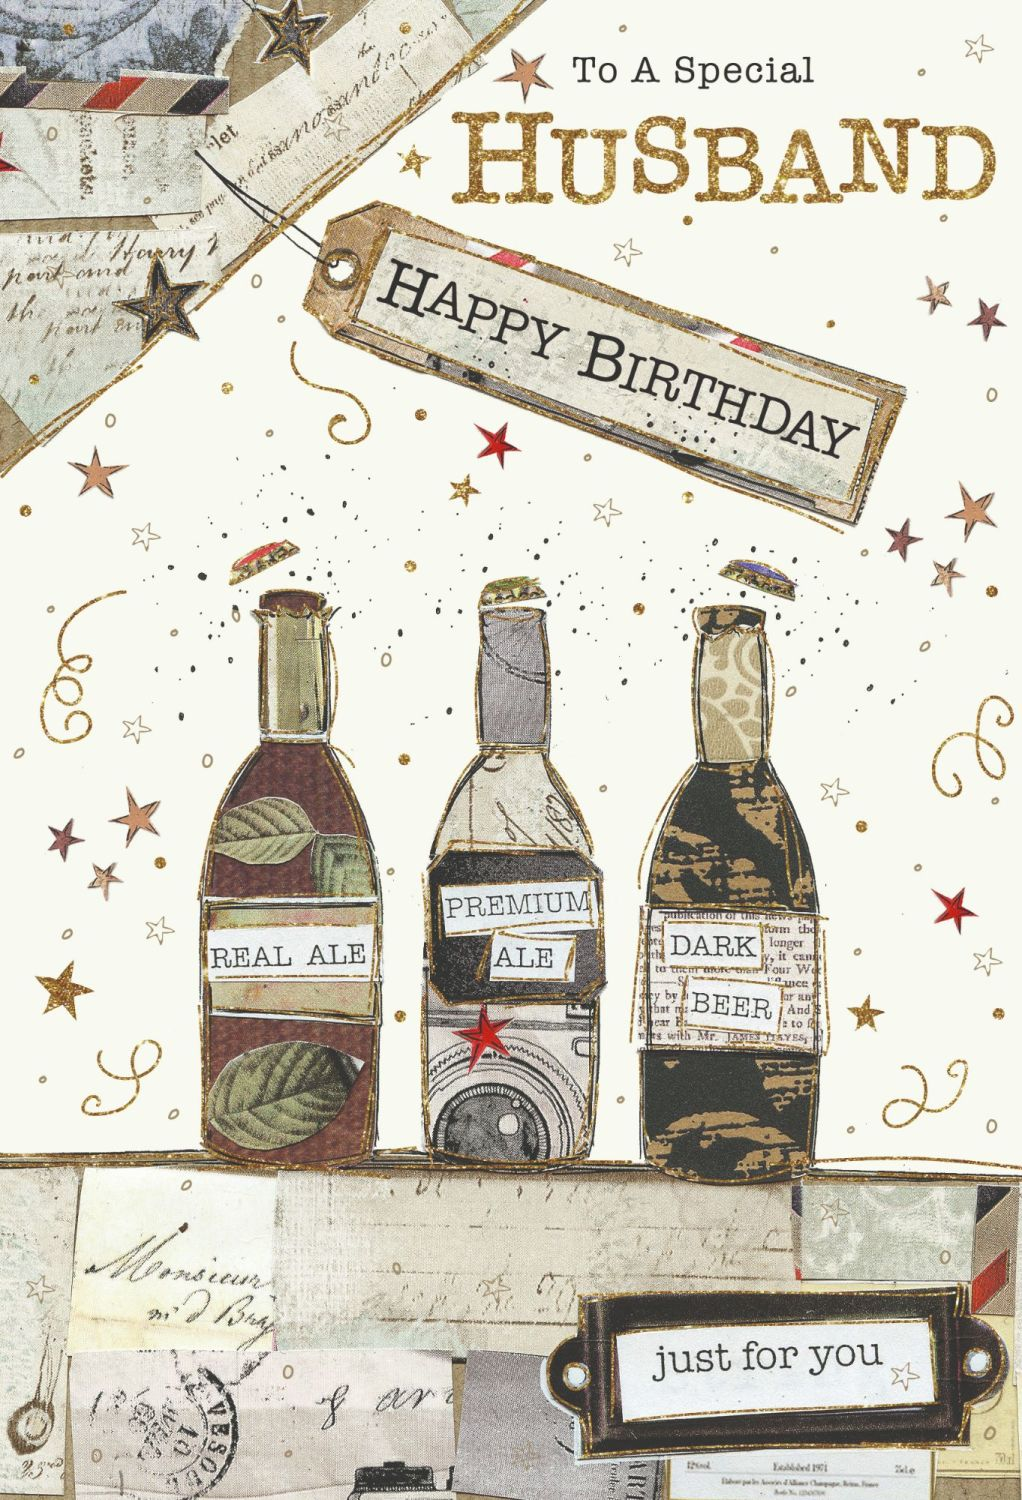 To A Very Special Husband - HUSBAND Birthday CARDS - Just FOR You CARDS - B